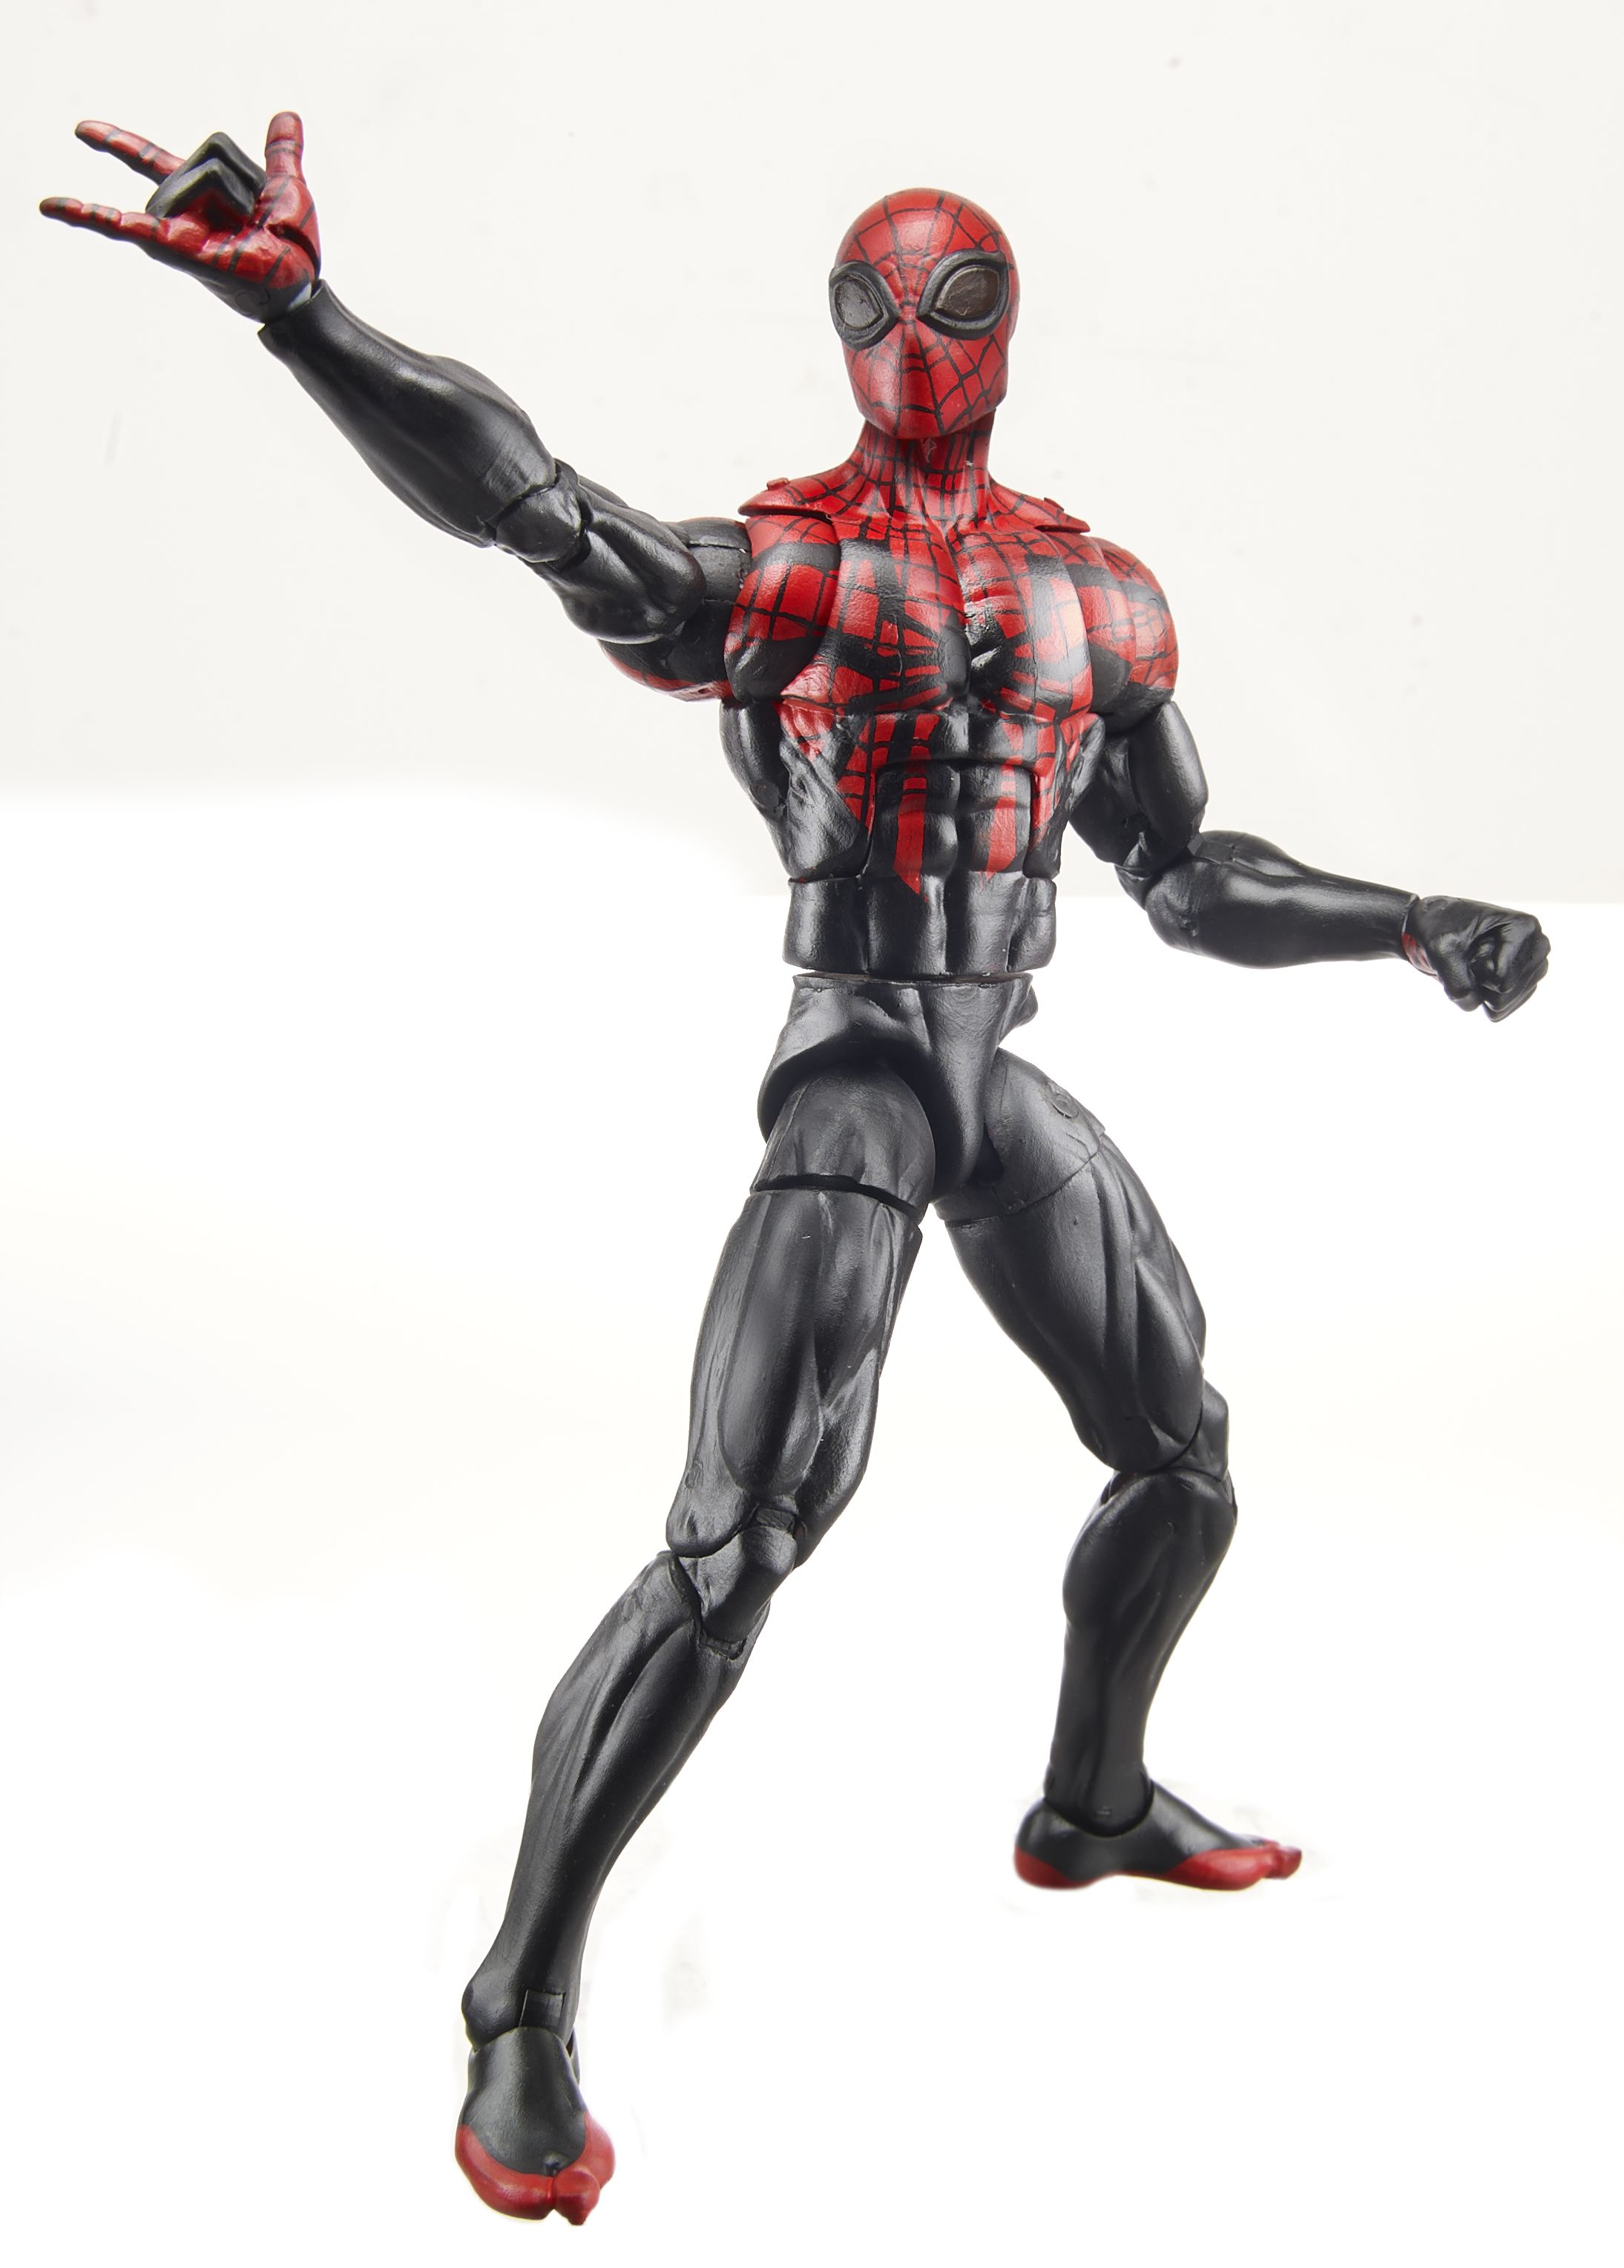 First Look Hasbro S Toys For The Amazing Spider Man 2 Might